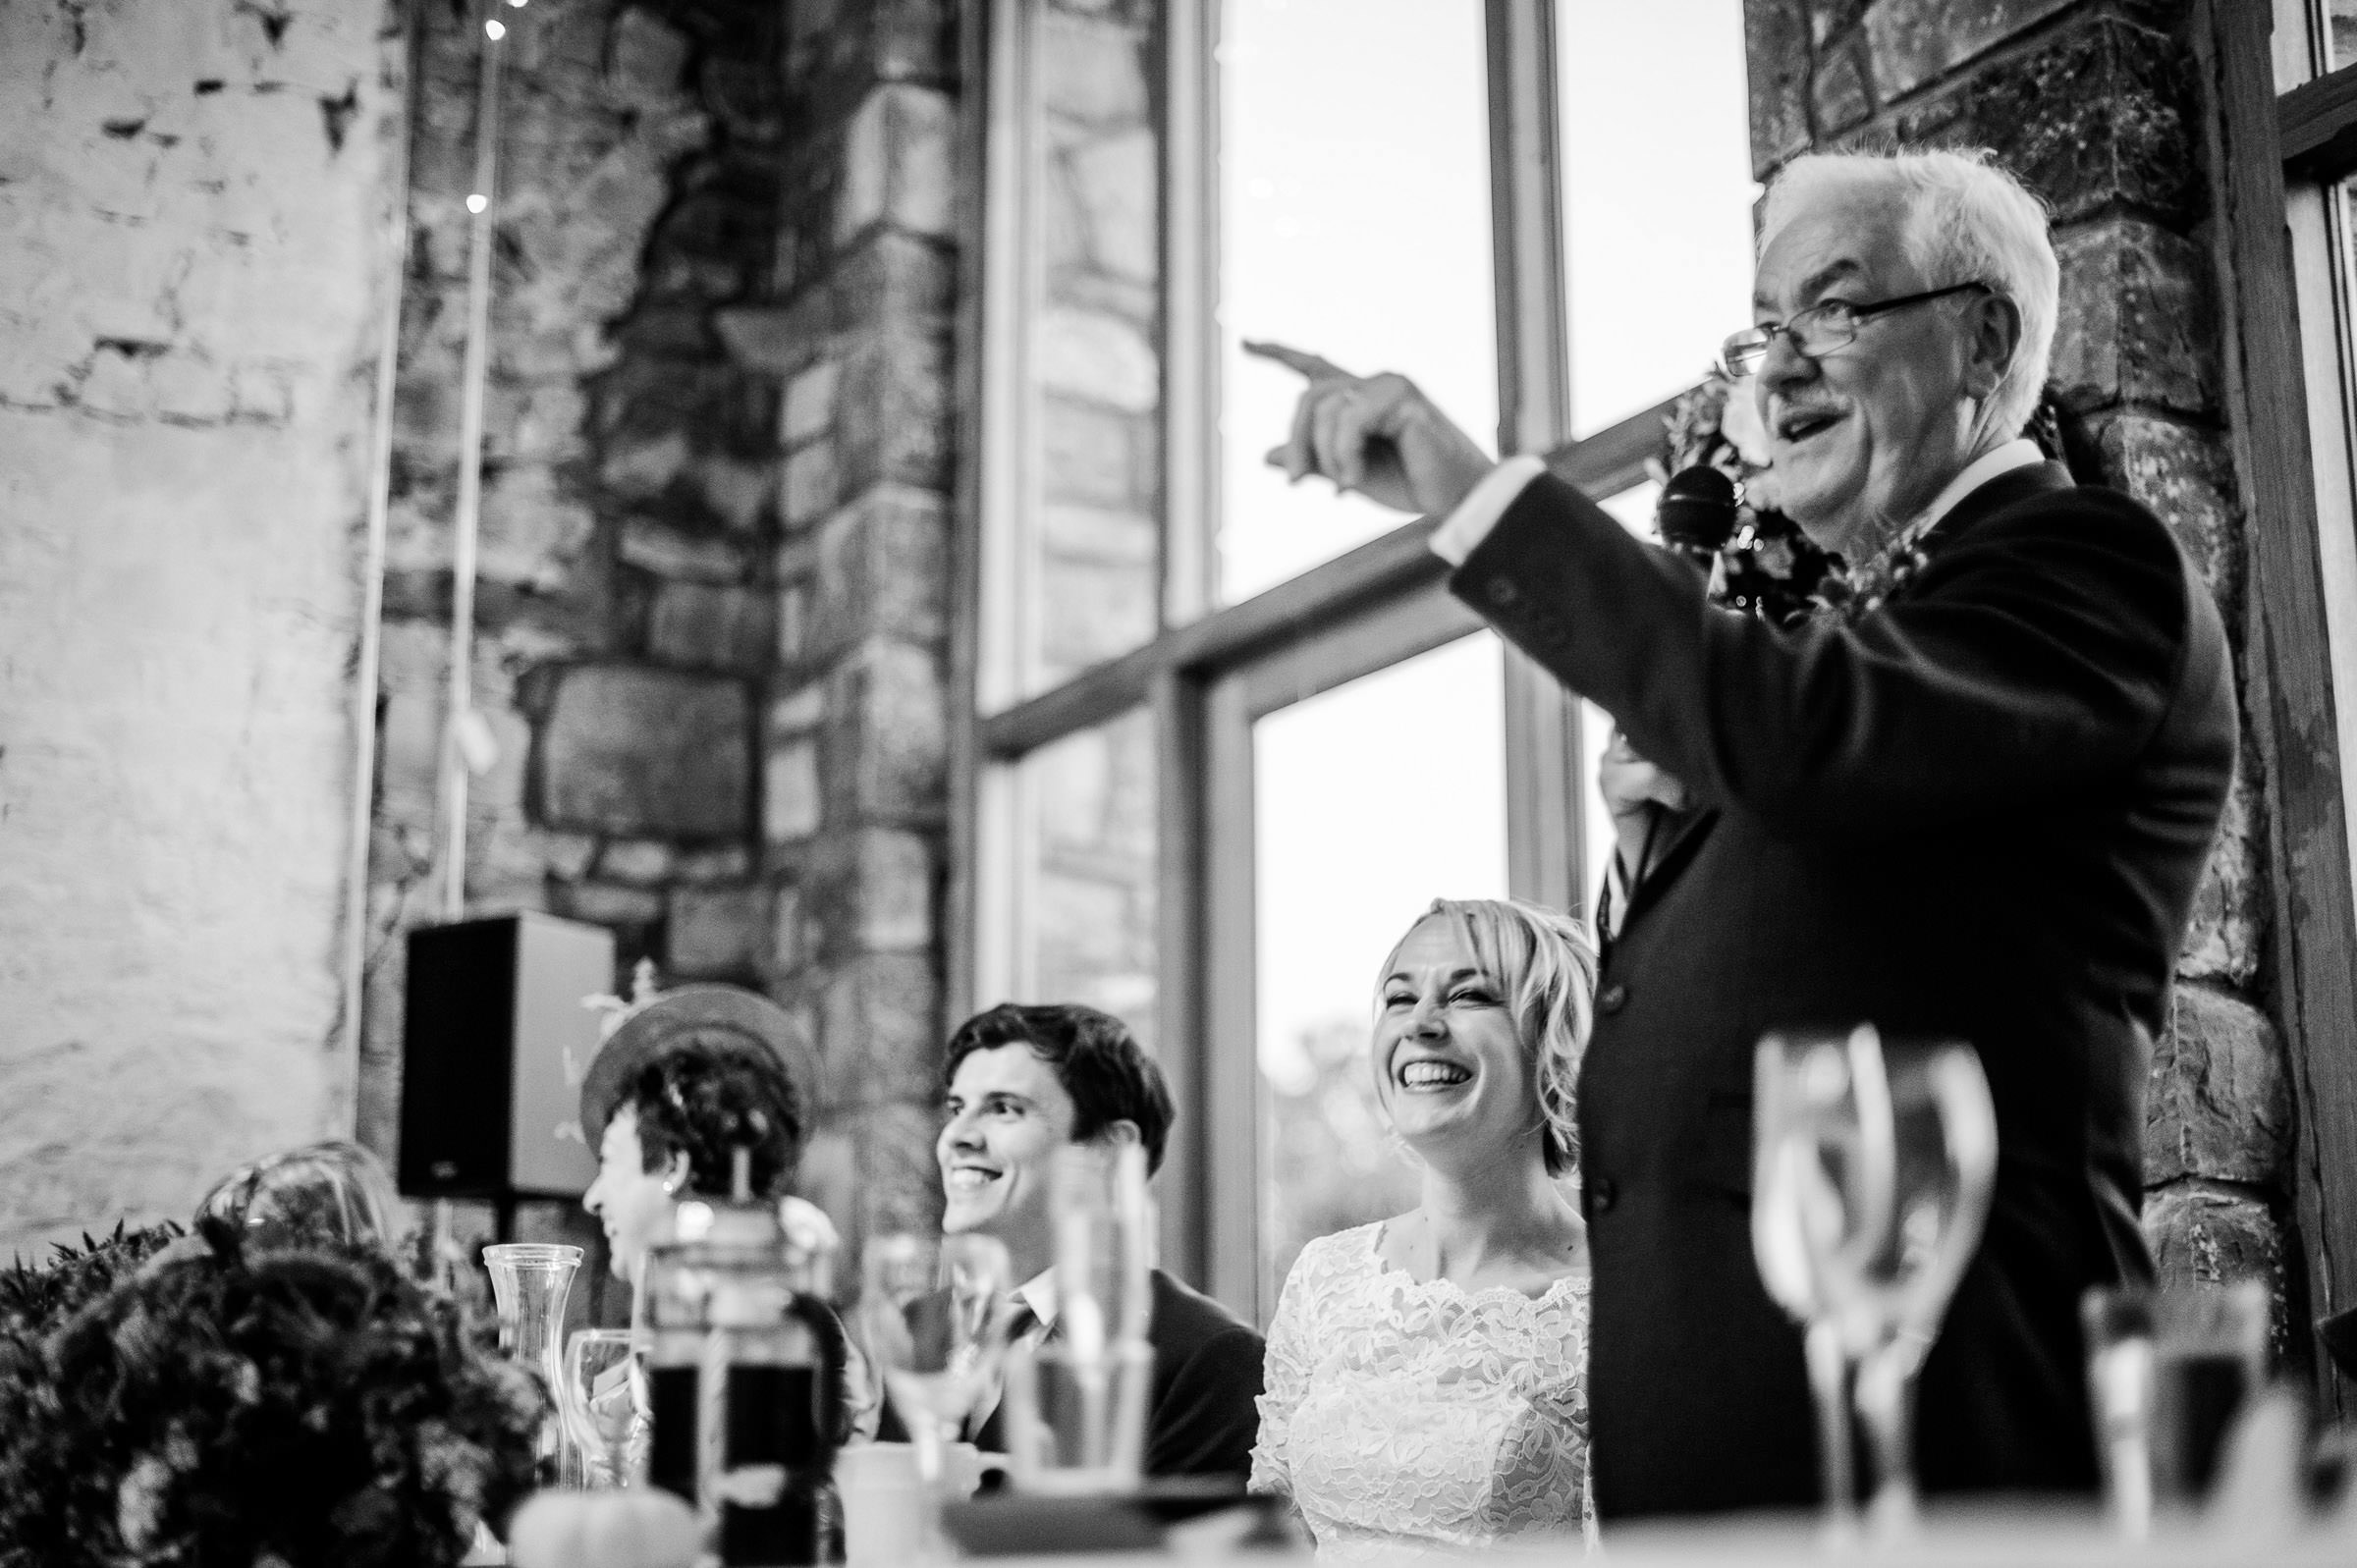 Reportage Wedding Photography South Wales 056.jpg